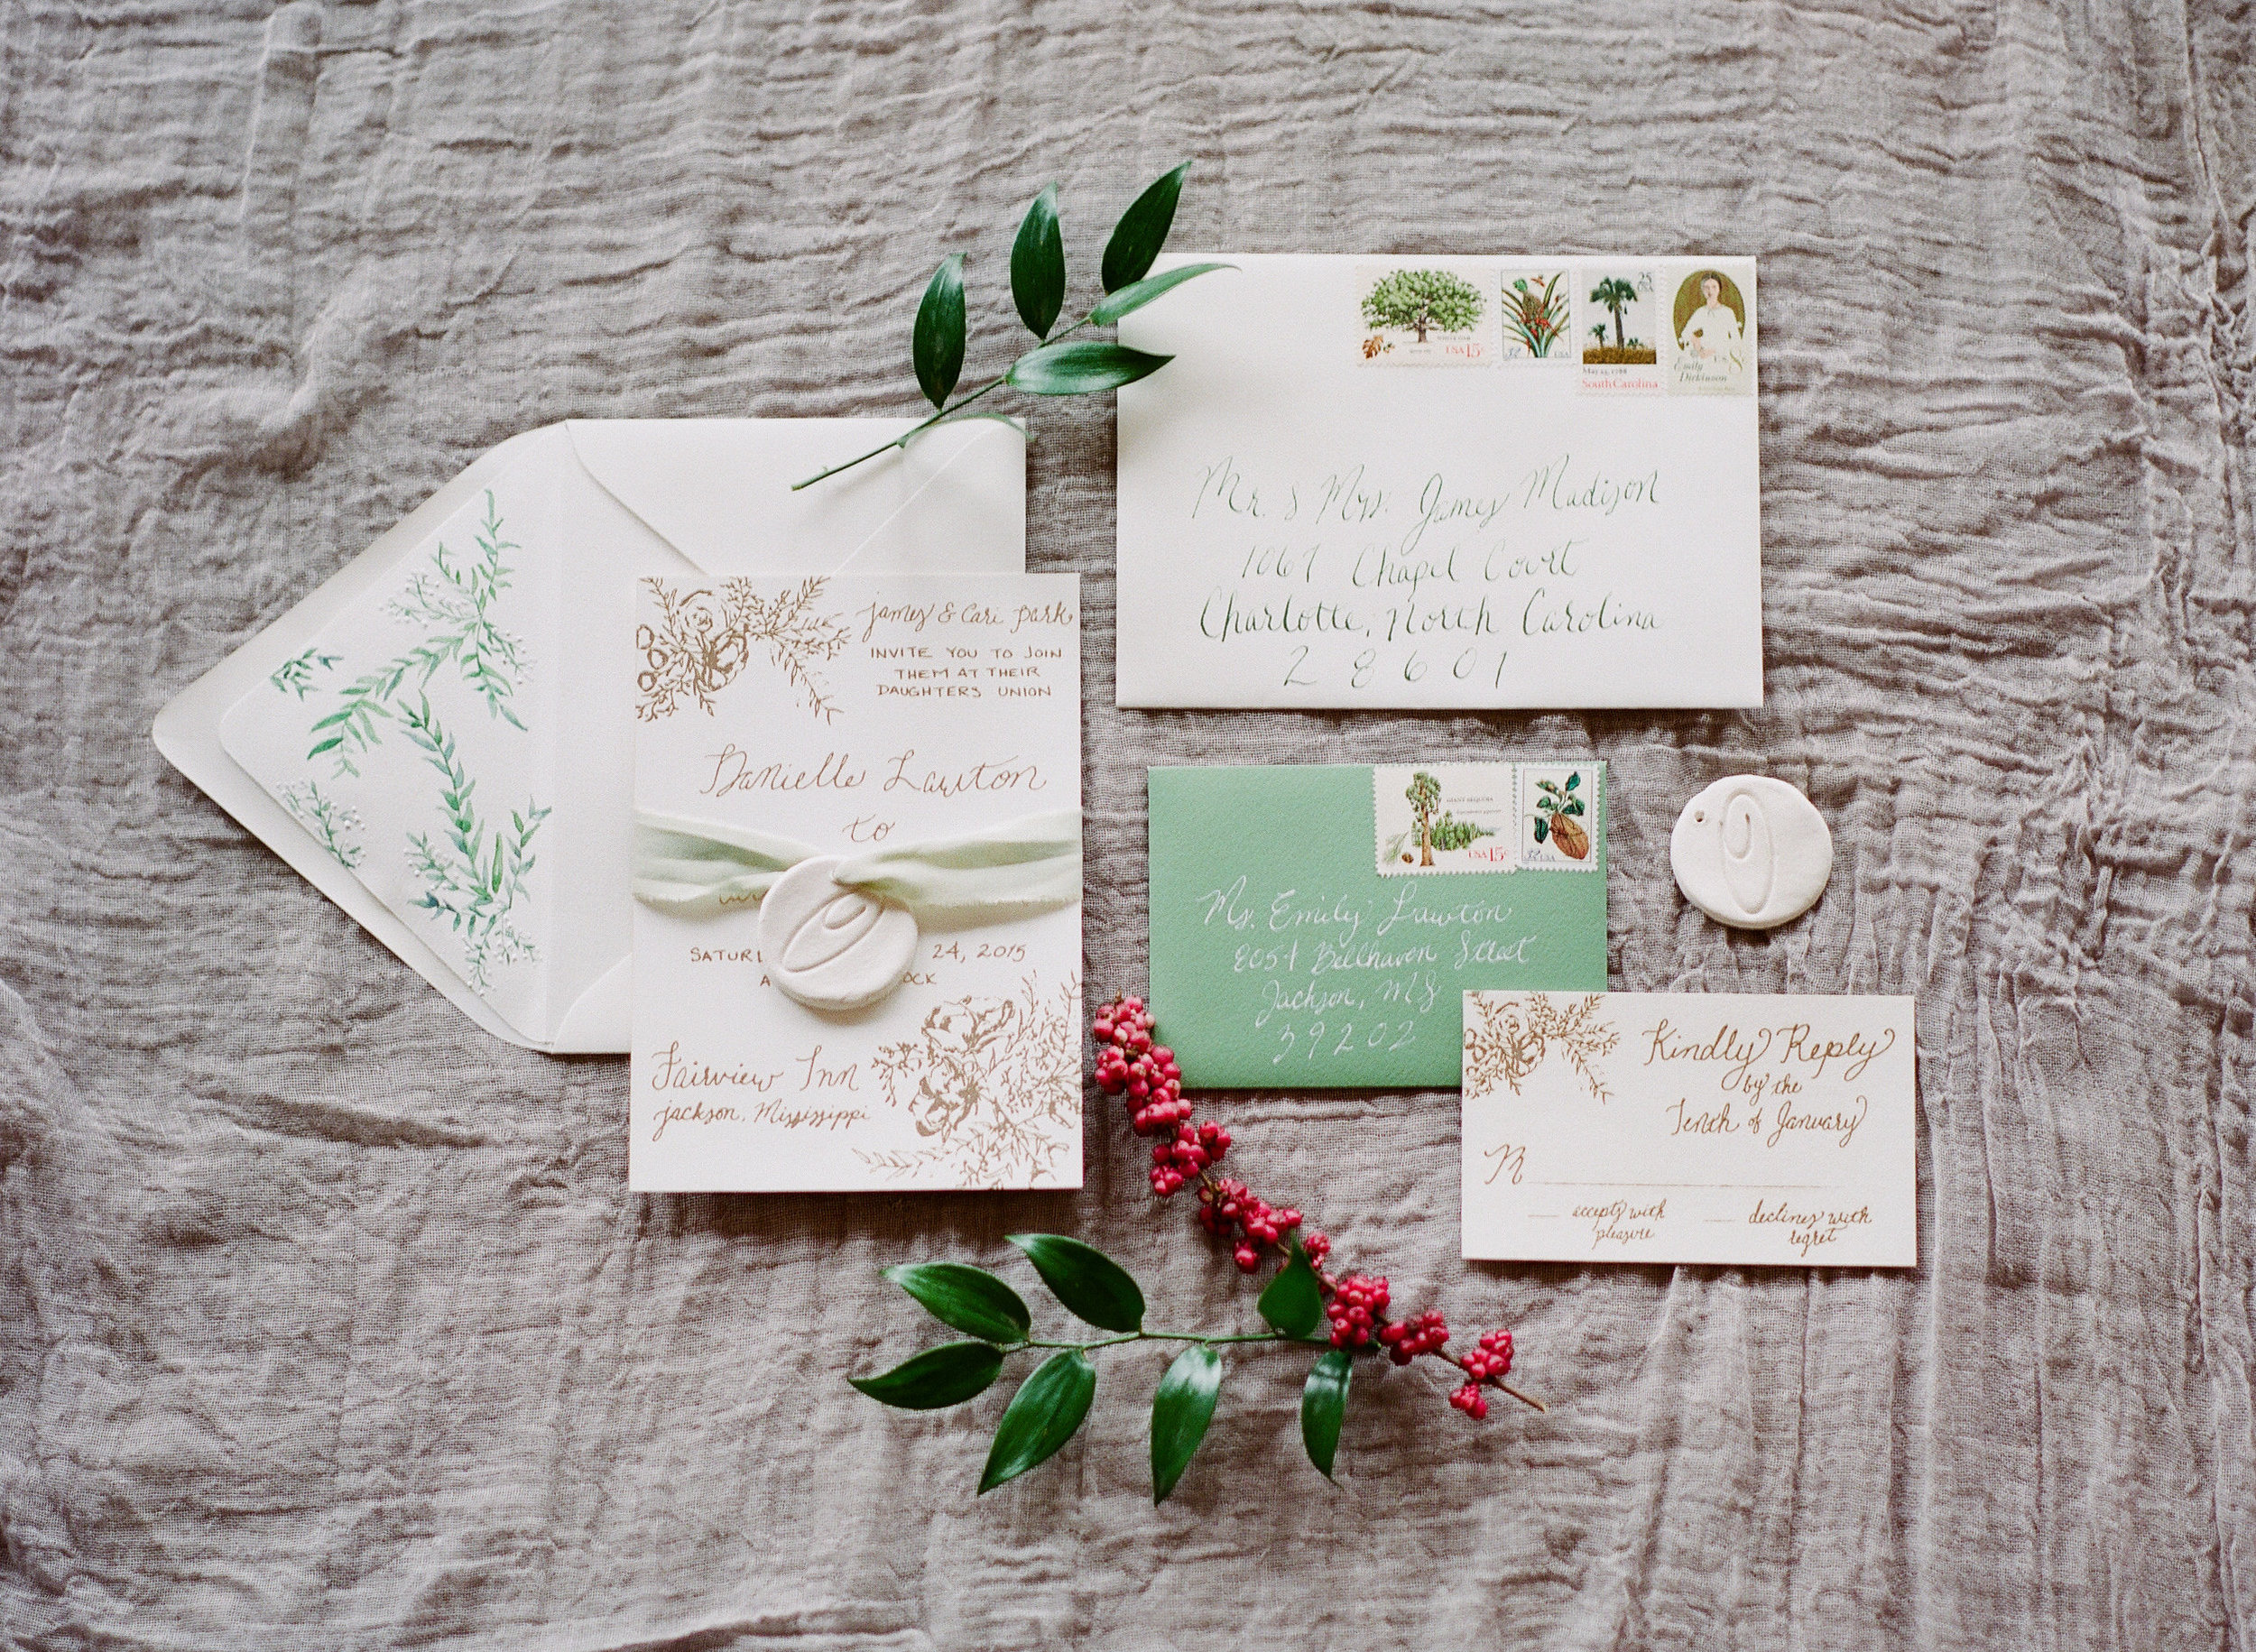 Styled Shoot at Ardor-Web Images-0129.jpg